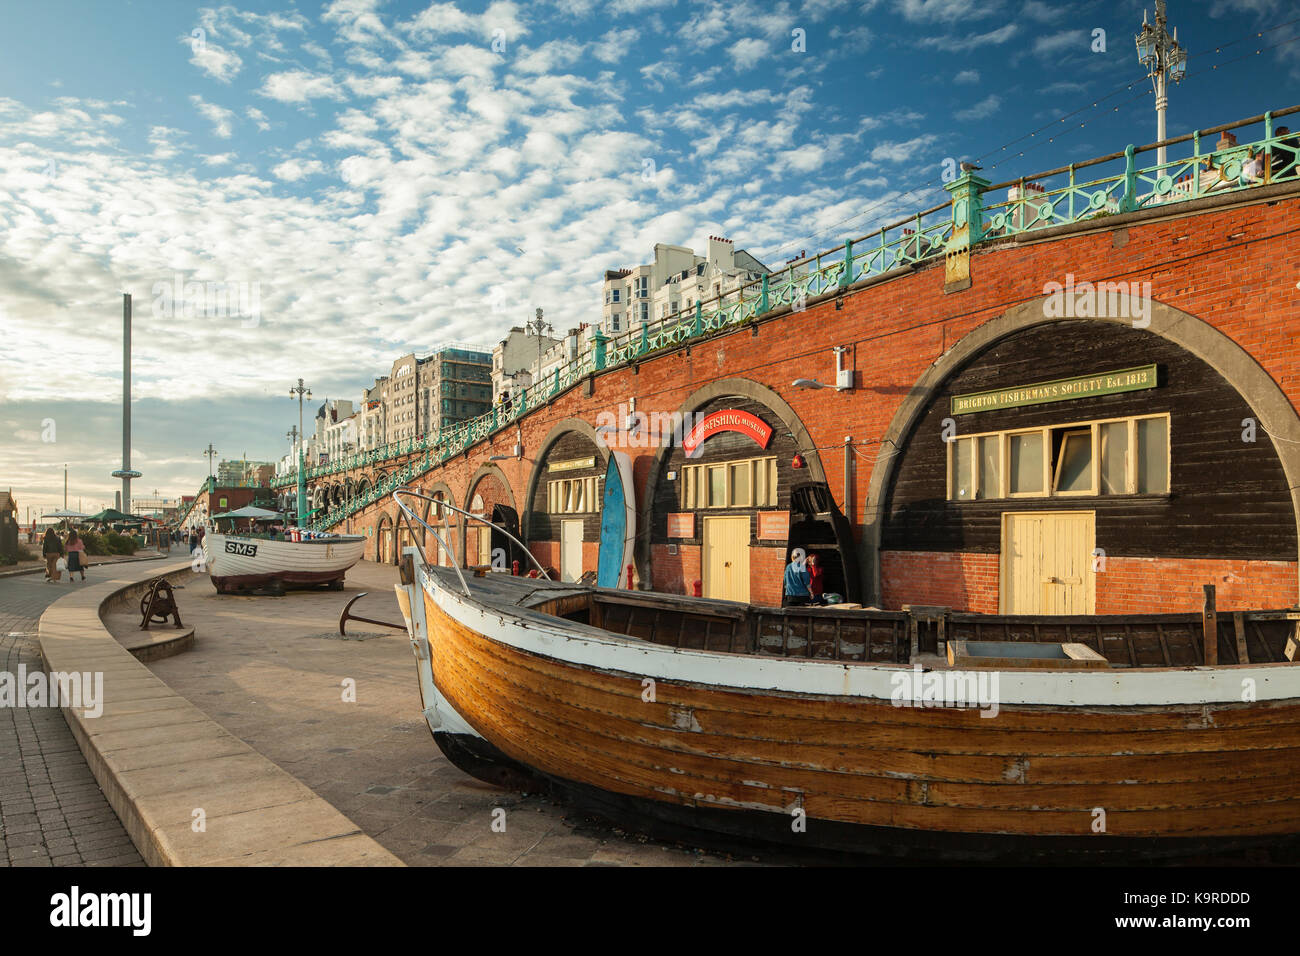 Late summer afternoon at the Fishing Museum on Brighton seafront, East Sussex, England. - Stock Image